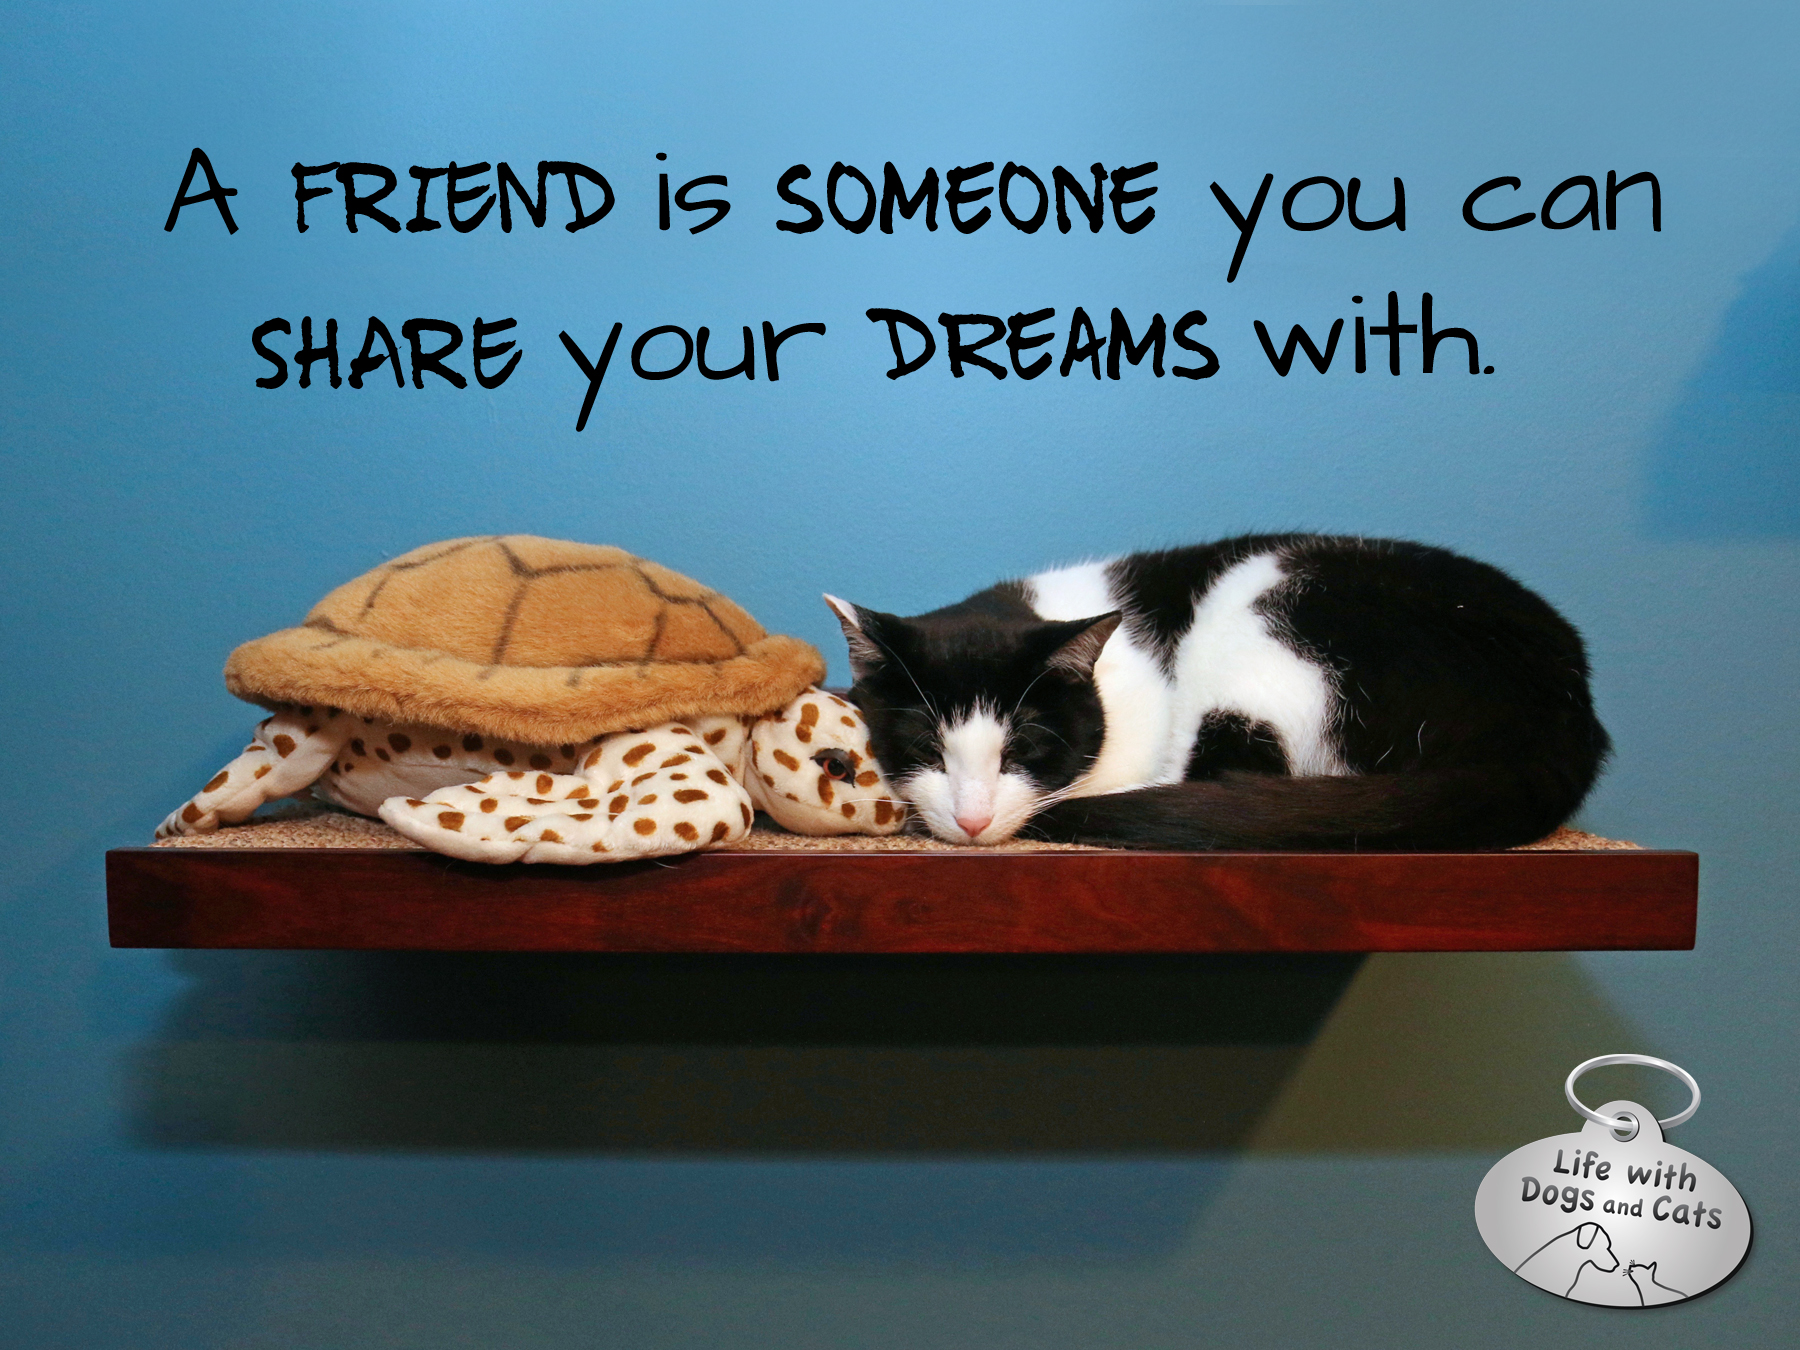 A friend is someone you can share your dreams with.